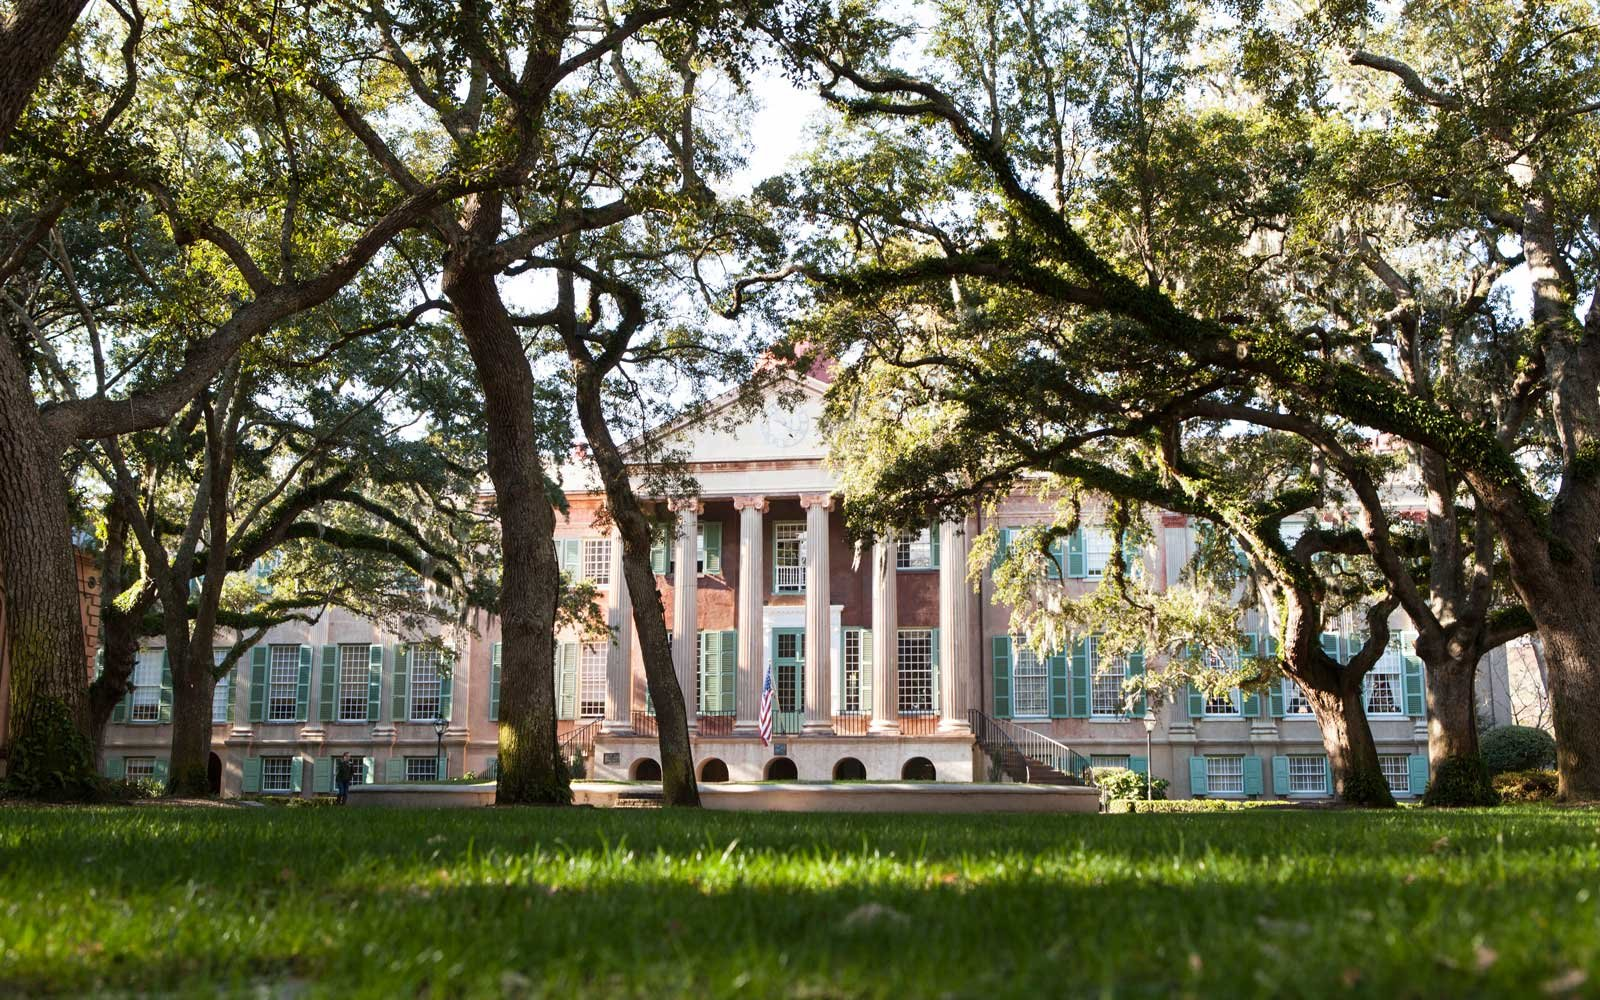 Take a Tour of America's Most Beautiful College Campus